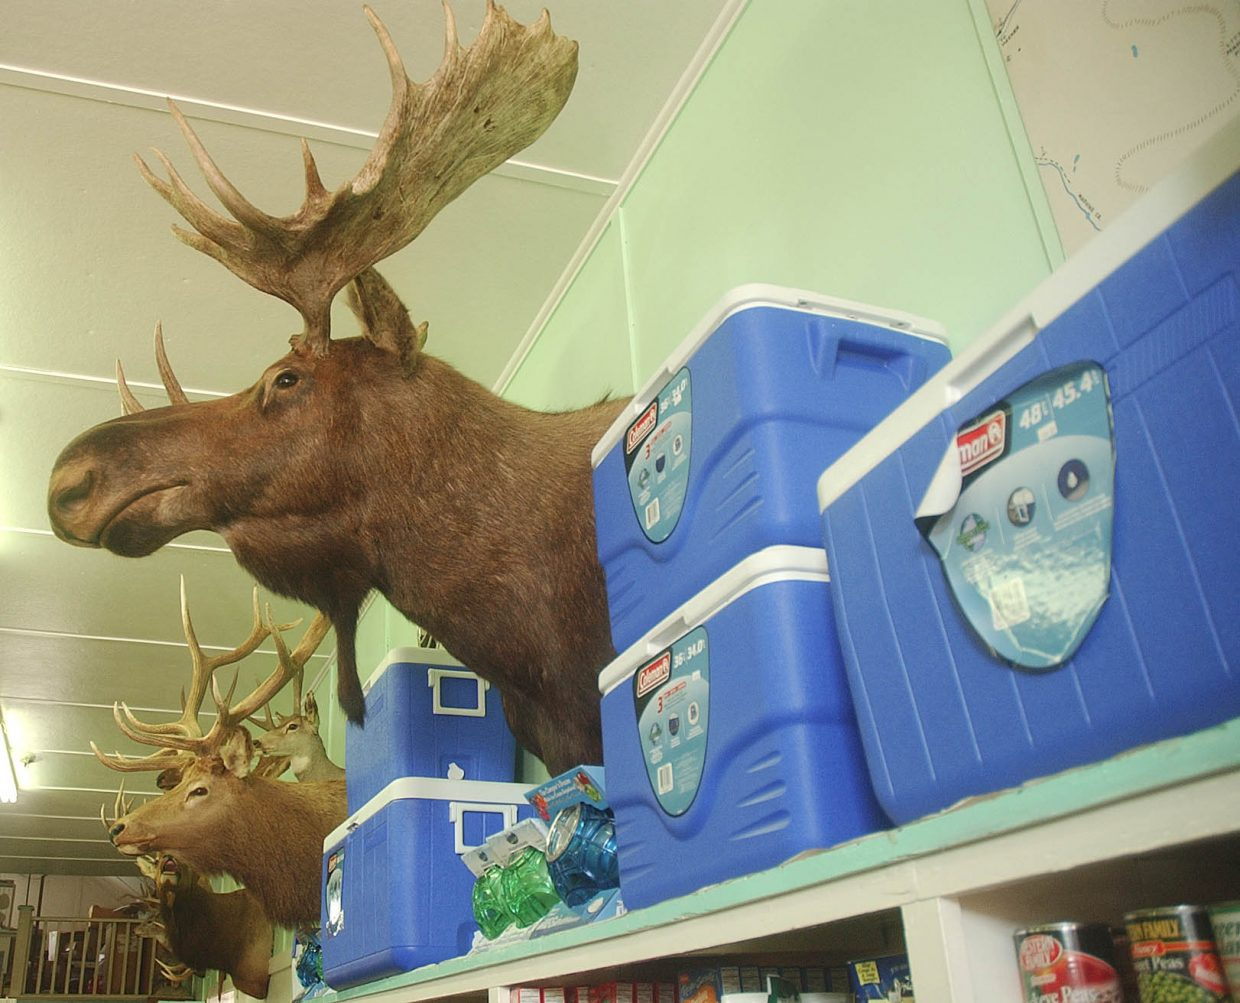 A stuffed moose sticks its head out between coolers for sale at the store.